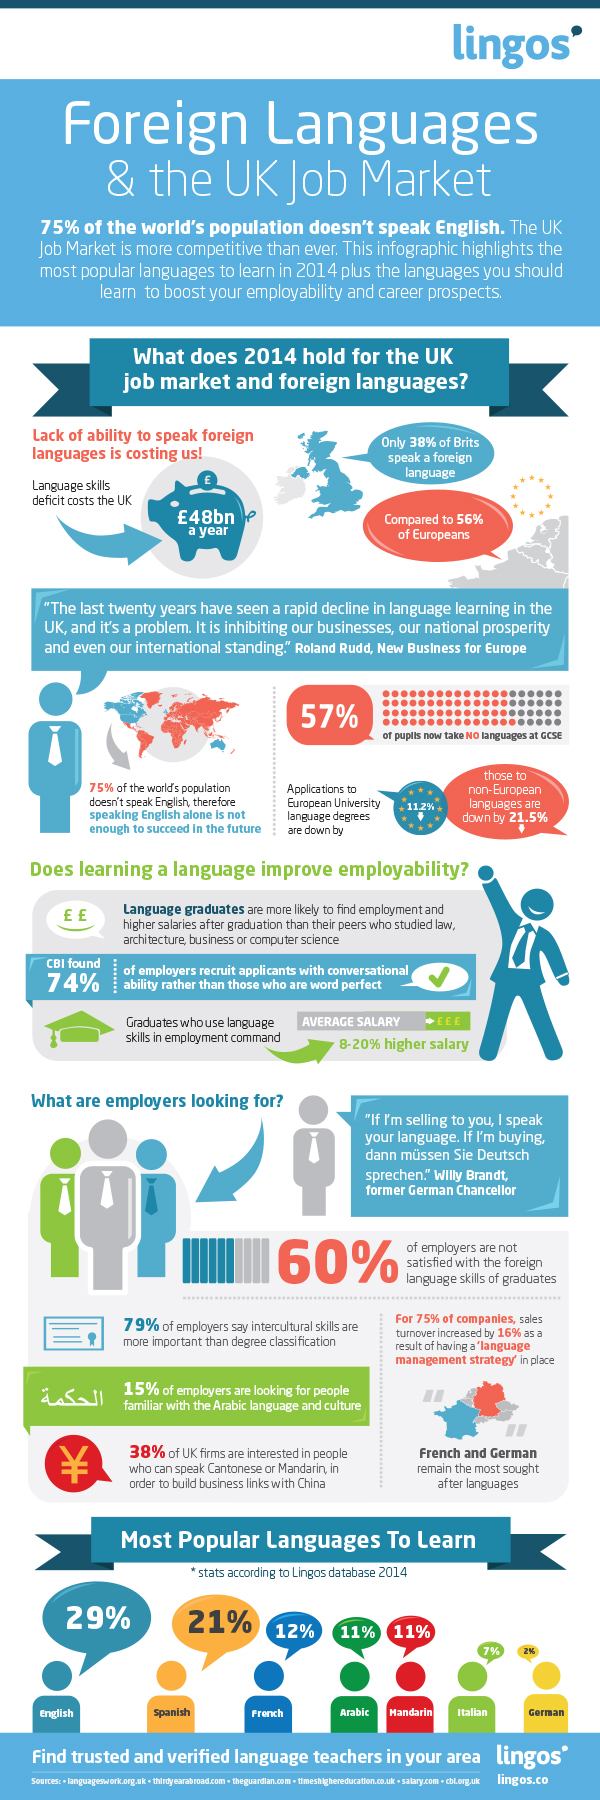 Can Knowing A Foreign Language Get You A Job